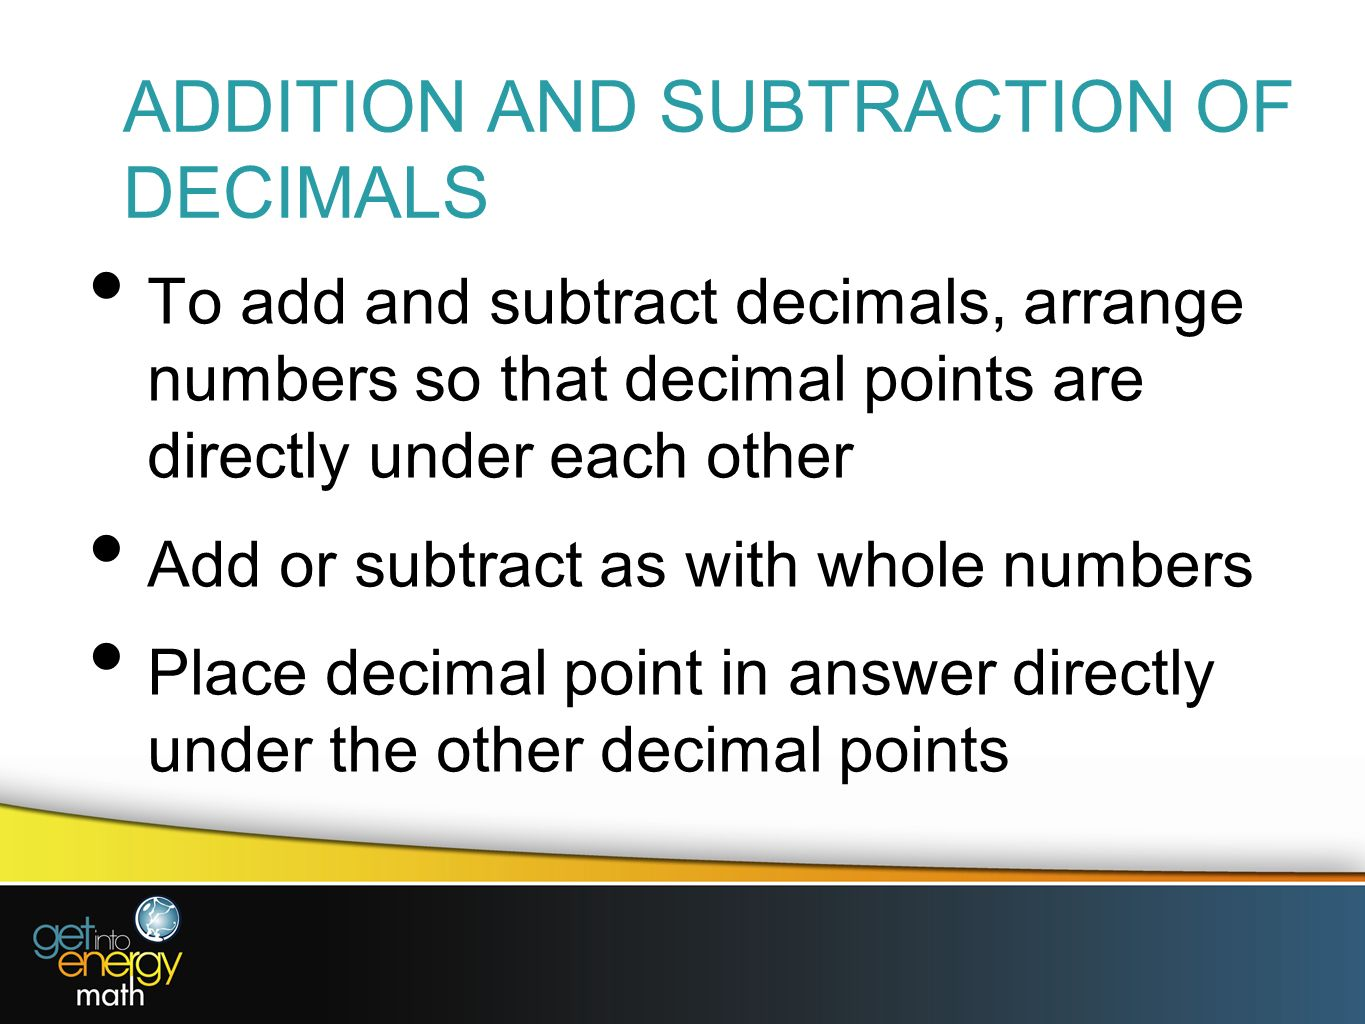 Fractions From Whole Numbers Worksheet Findingmon Denominator Howto Video · Adding  Addition And Subtraction Of Decimals